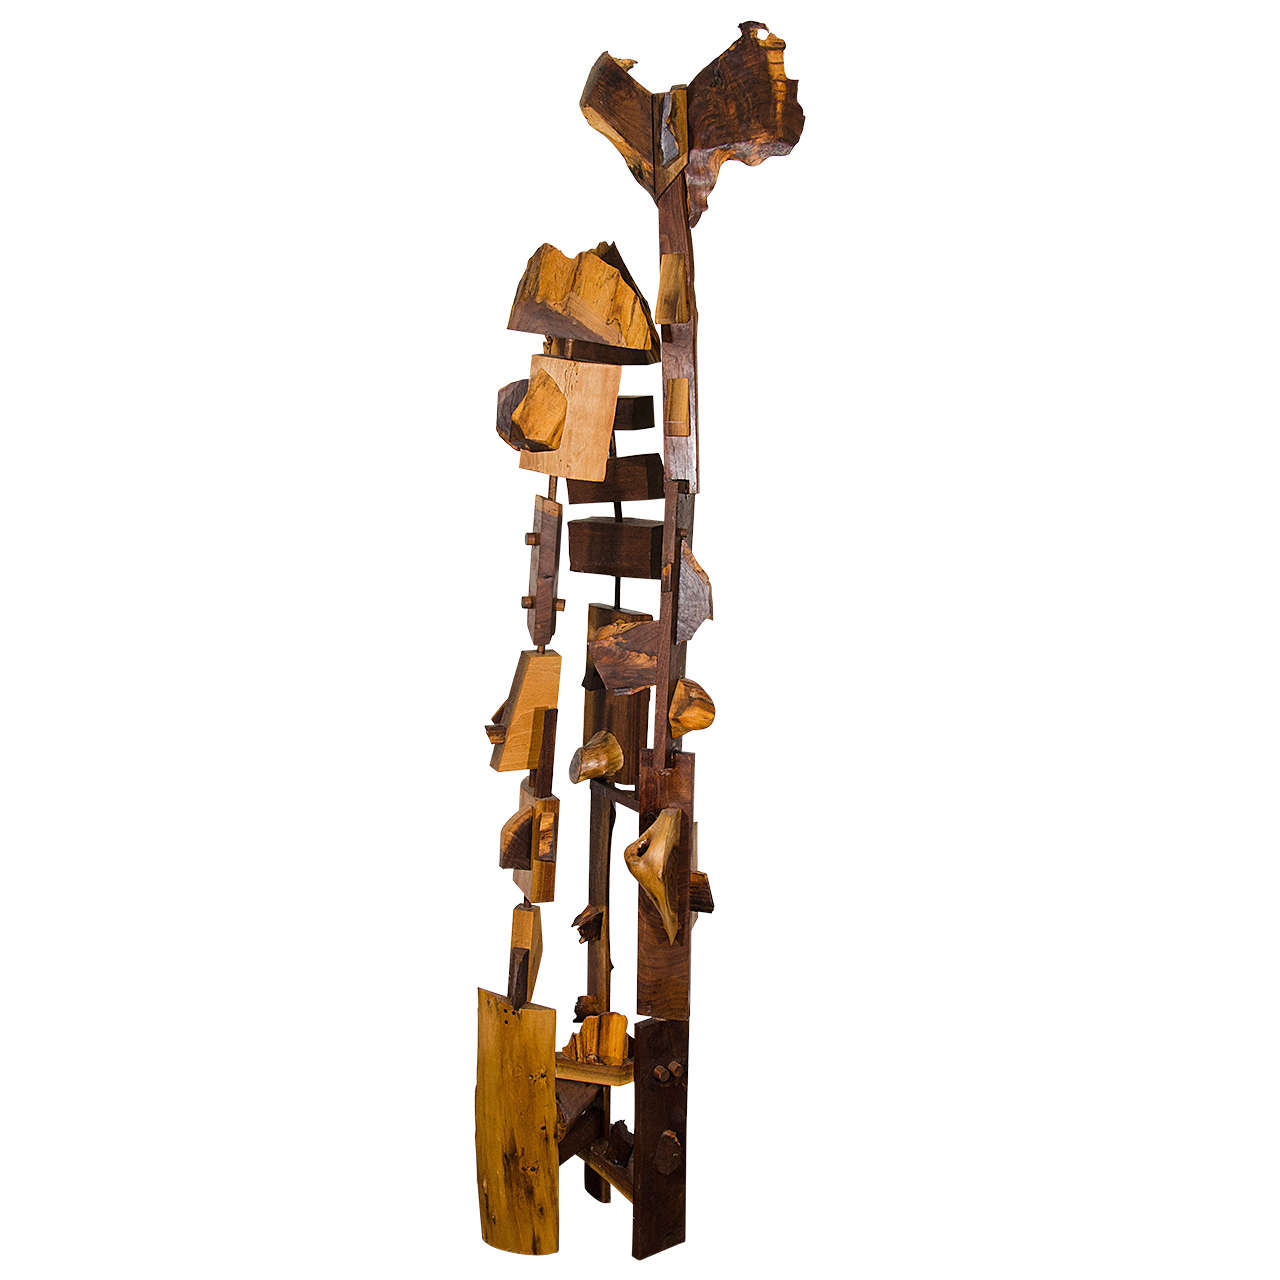 Midcentury Wooden Abstract Sculpture Inspired by Nakashima